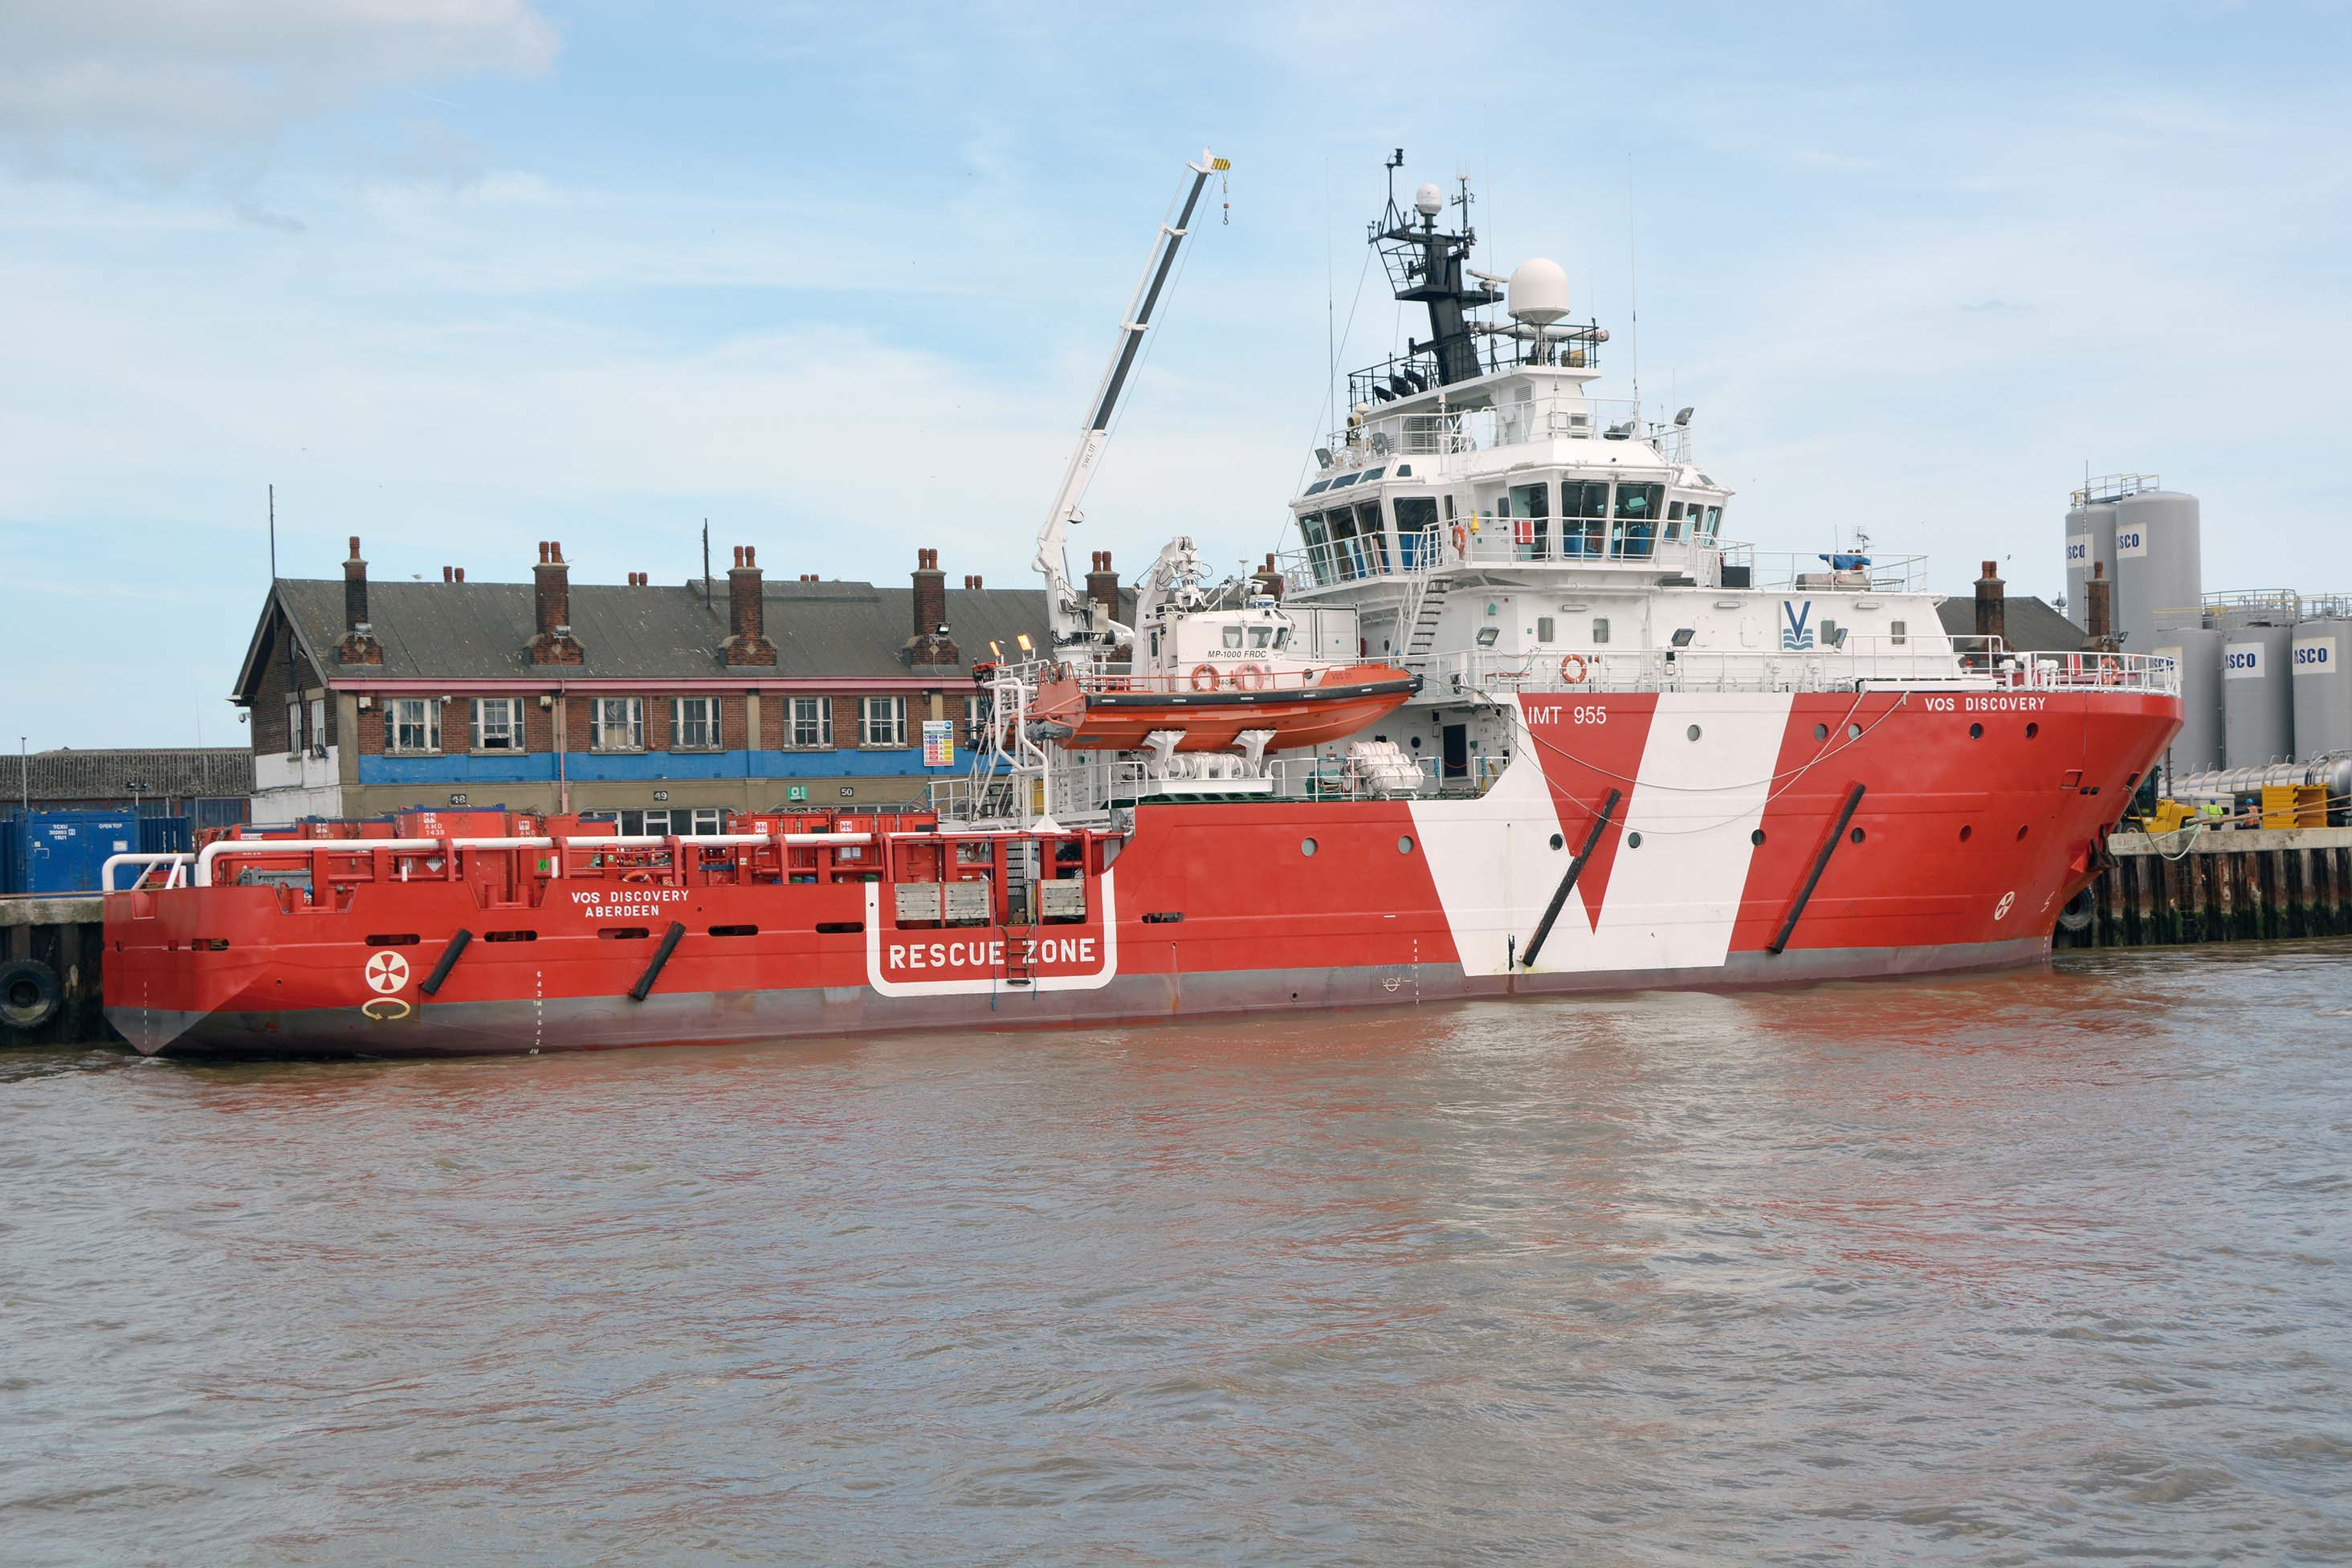 Photo Gallery of Today - Great Yarmouth - Shipping Today & Yesterday